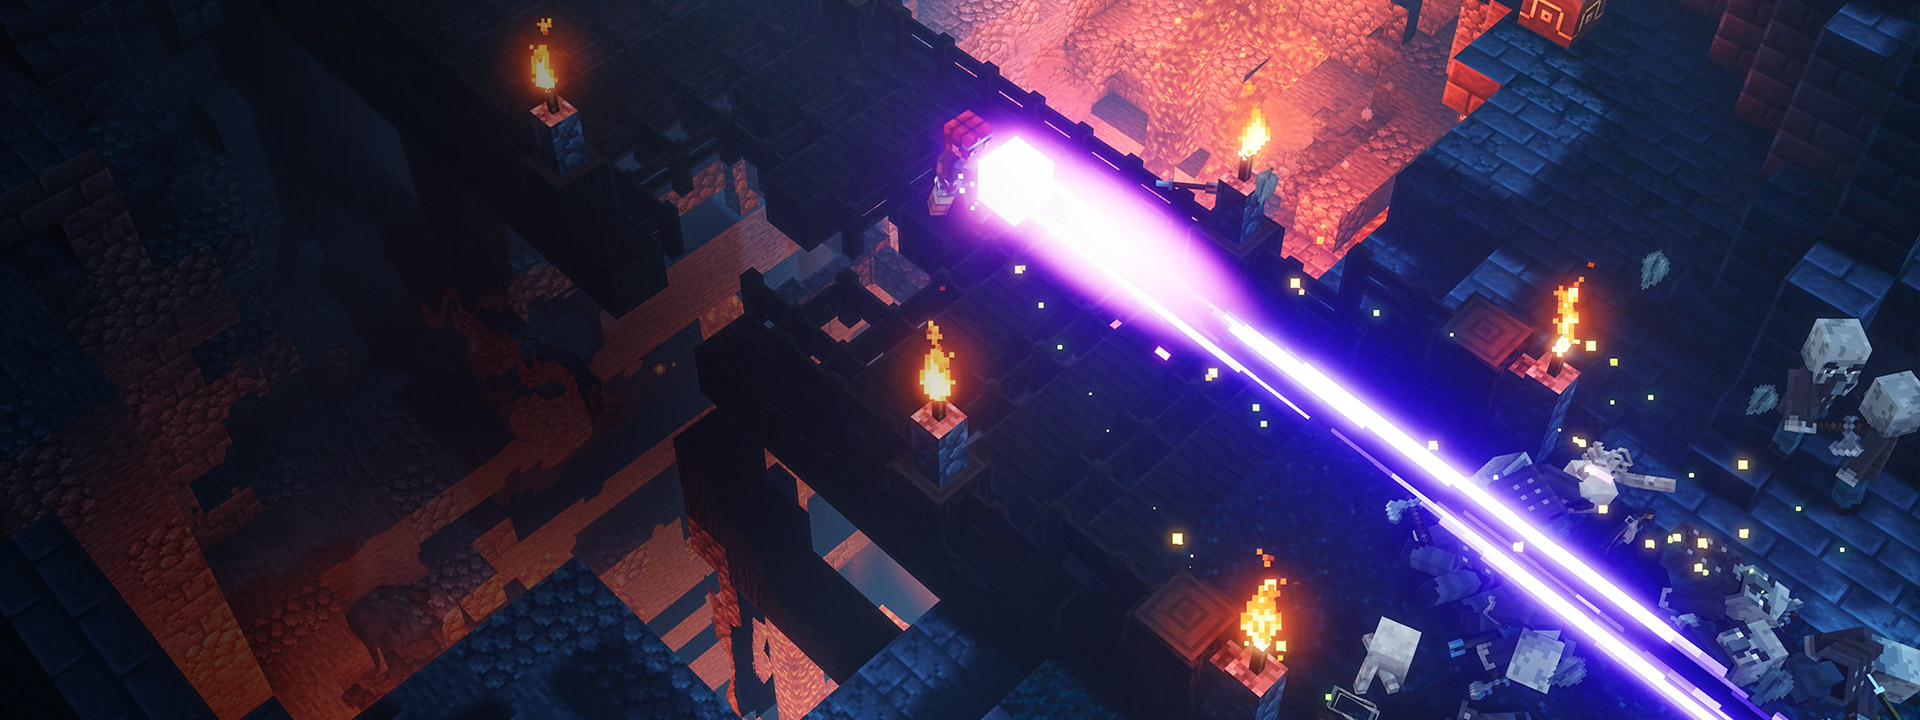 Main character destroying enemies by shooting a plasma ray out of a box